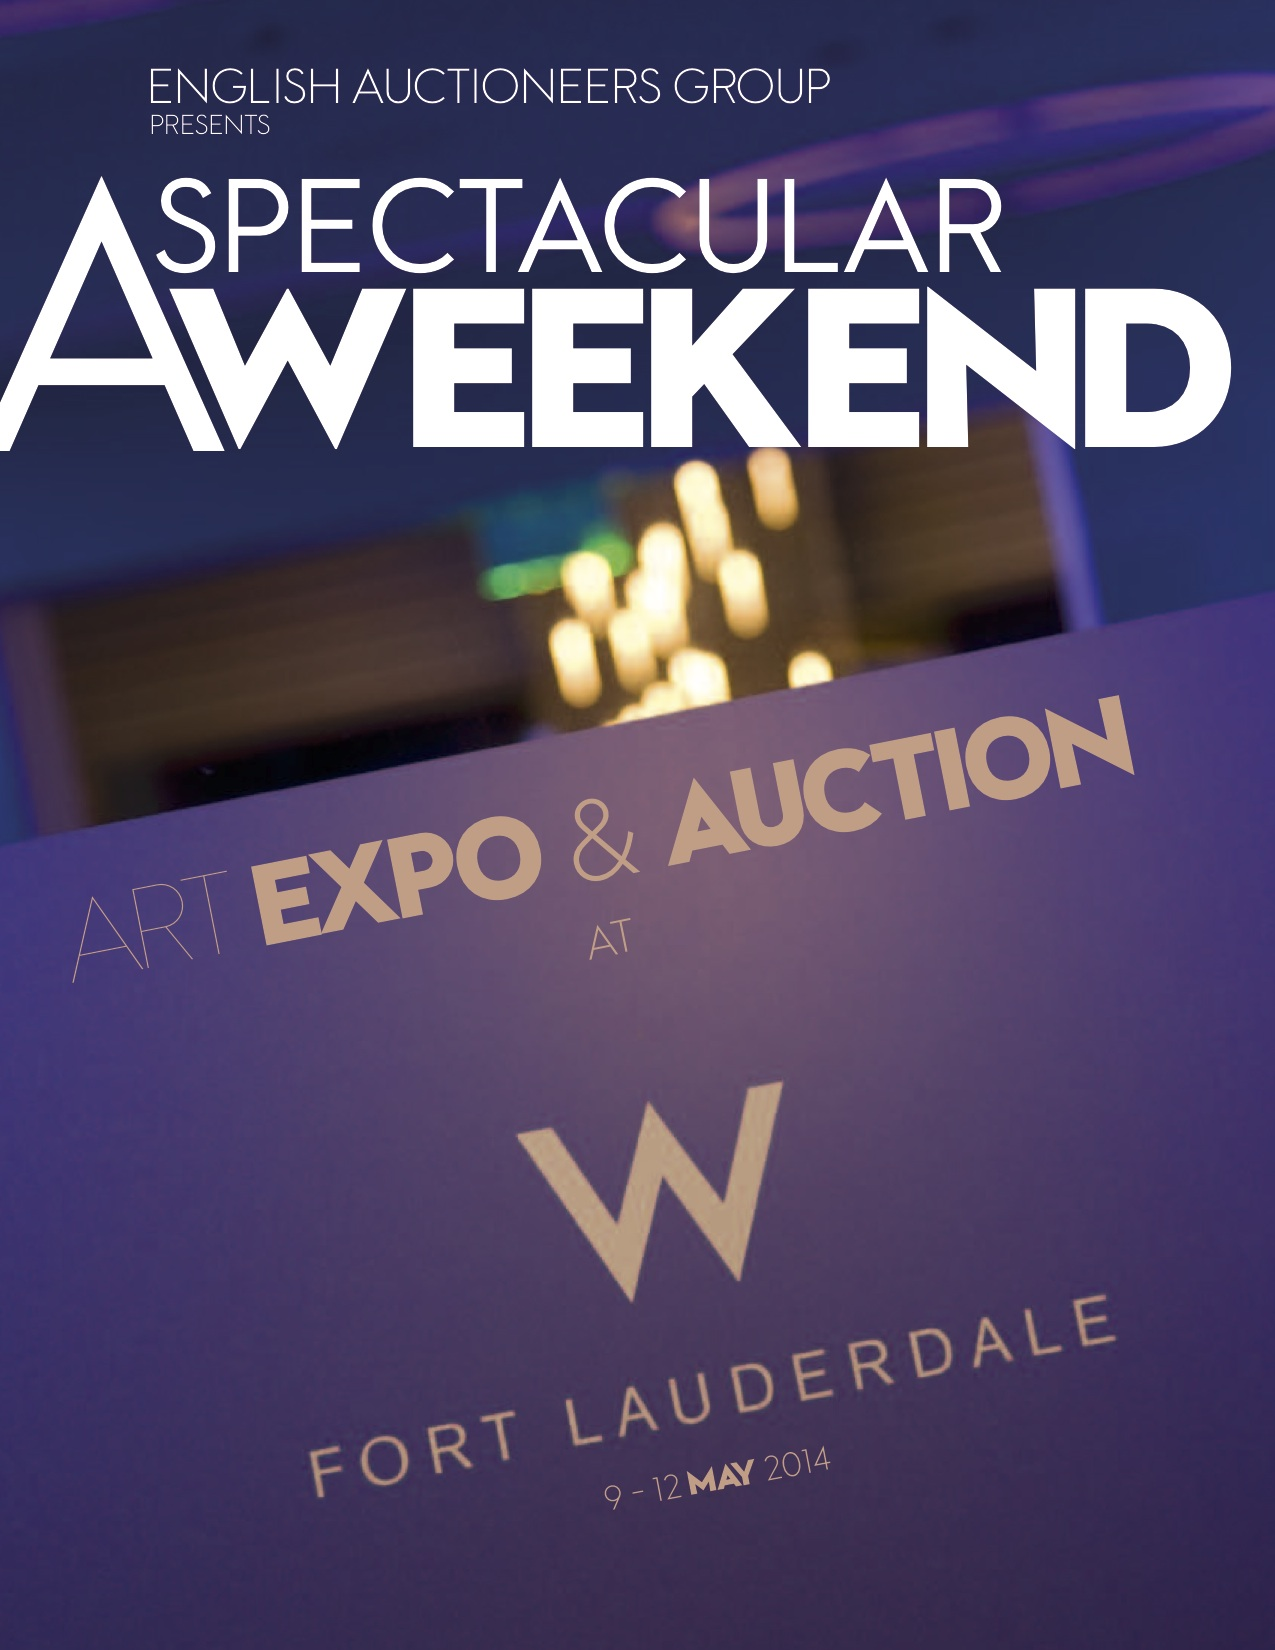 W-Hotel Brochure Invitation for English Auctioneers